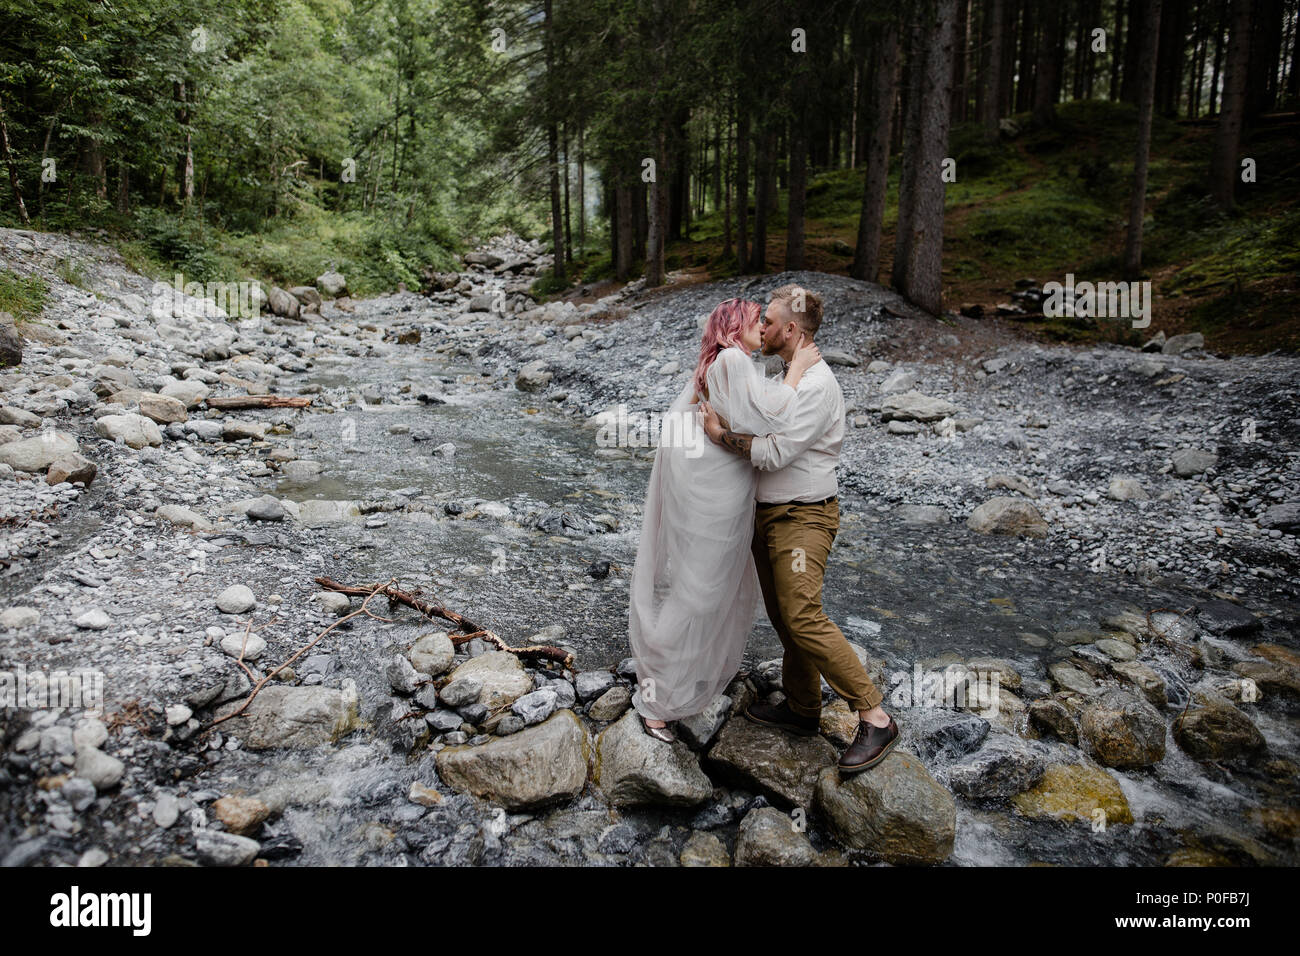 beautiful young wedding couple kissing while standing on rocks in rapid mountain river, Alps - Stock Image